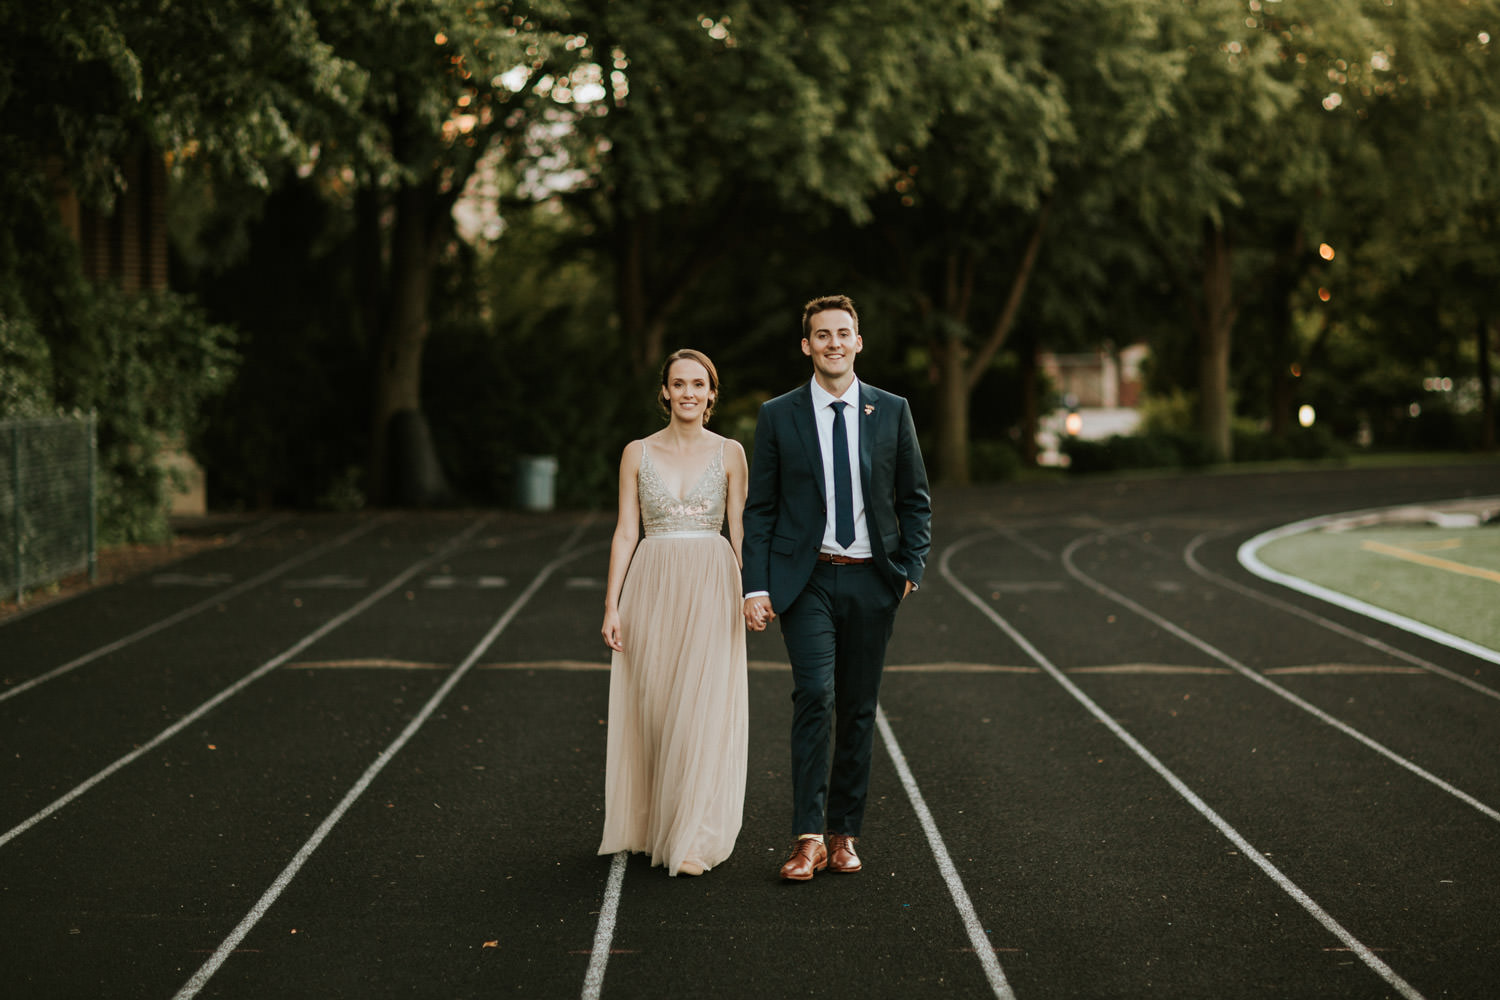 Portrait of a bride and groom walk on a track field in Chicago